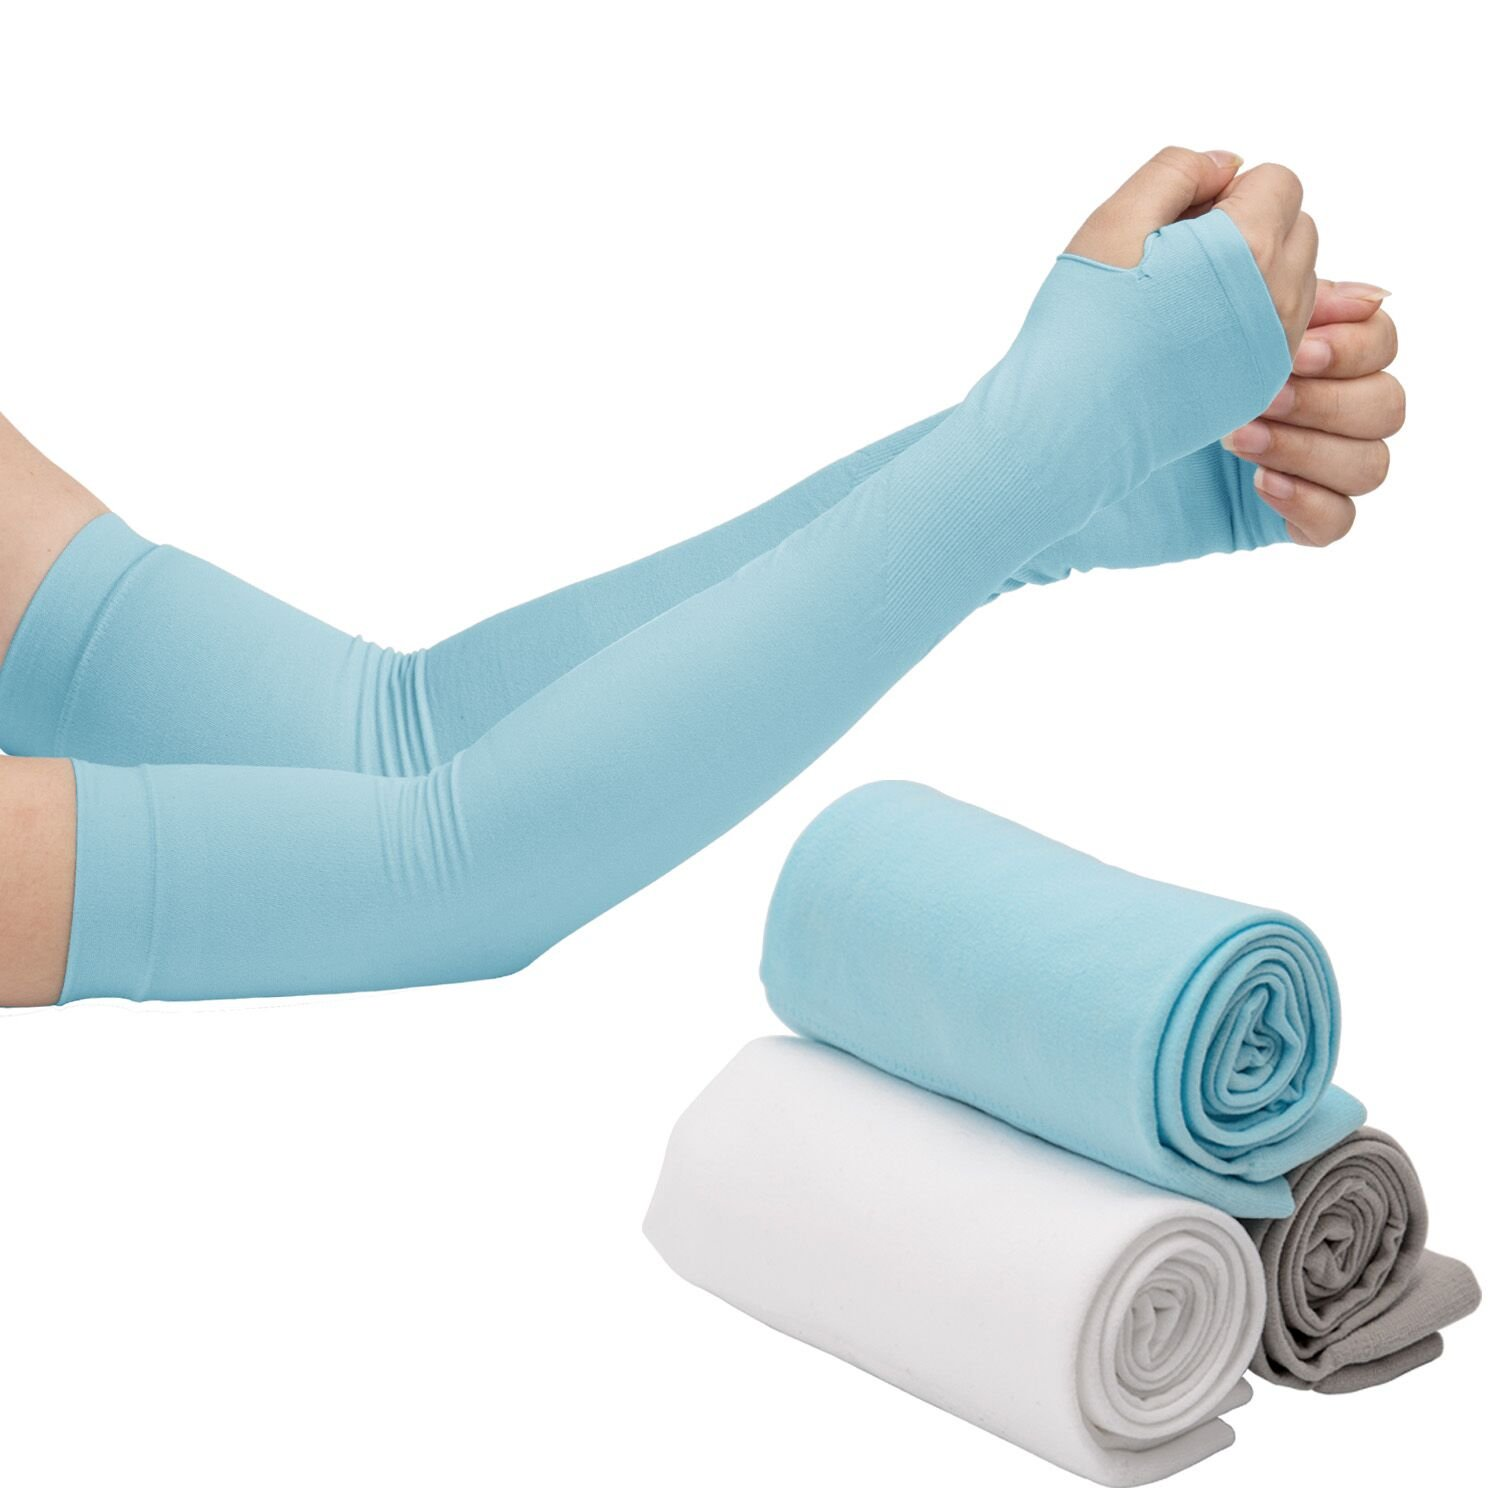 LUTER Arm Sleeves, UV Sun Protection Arm Cooling Sleeve Covers, Anti Mosquito Bites and Compression Design for Cycling/Golf/Running/Basketbal/Driving/Climbing For Men Women